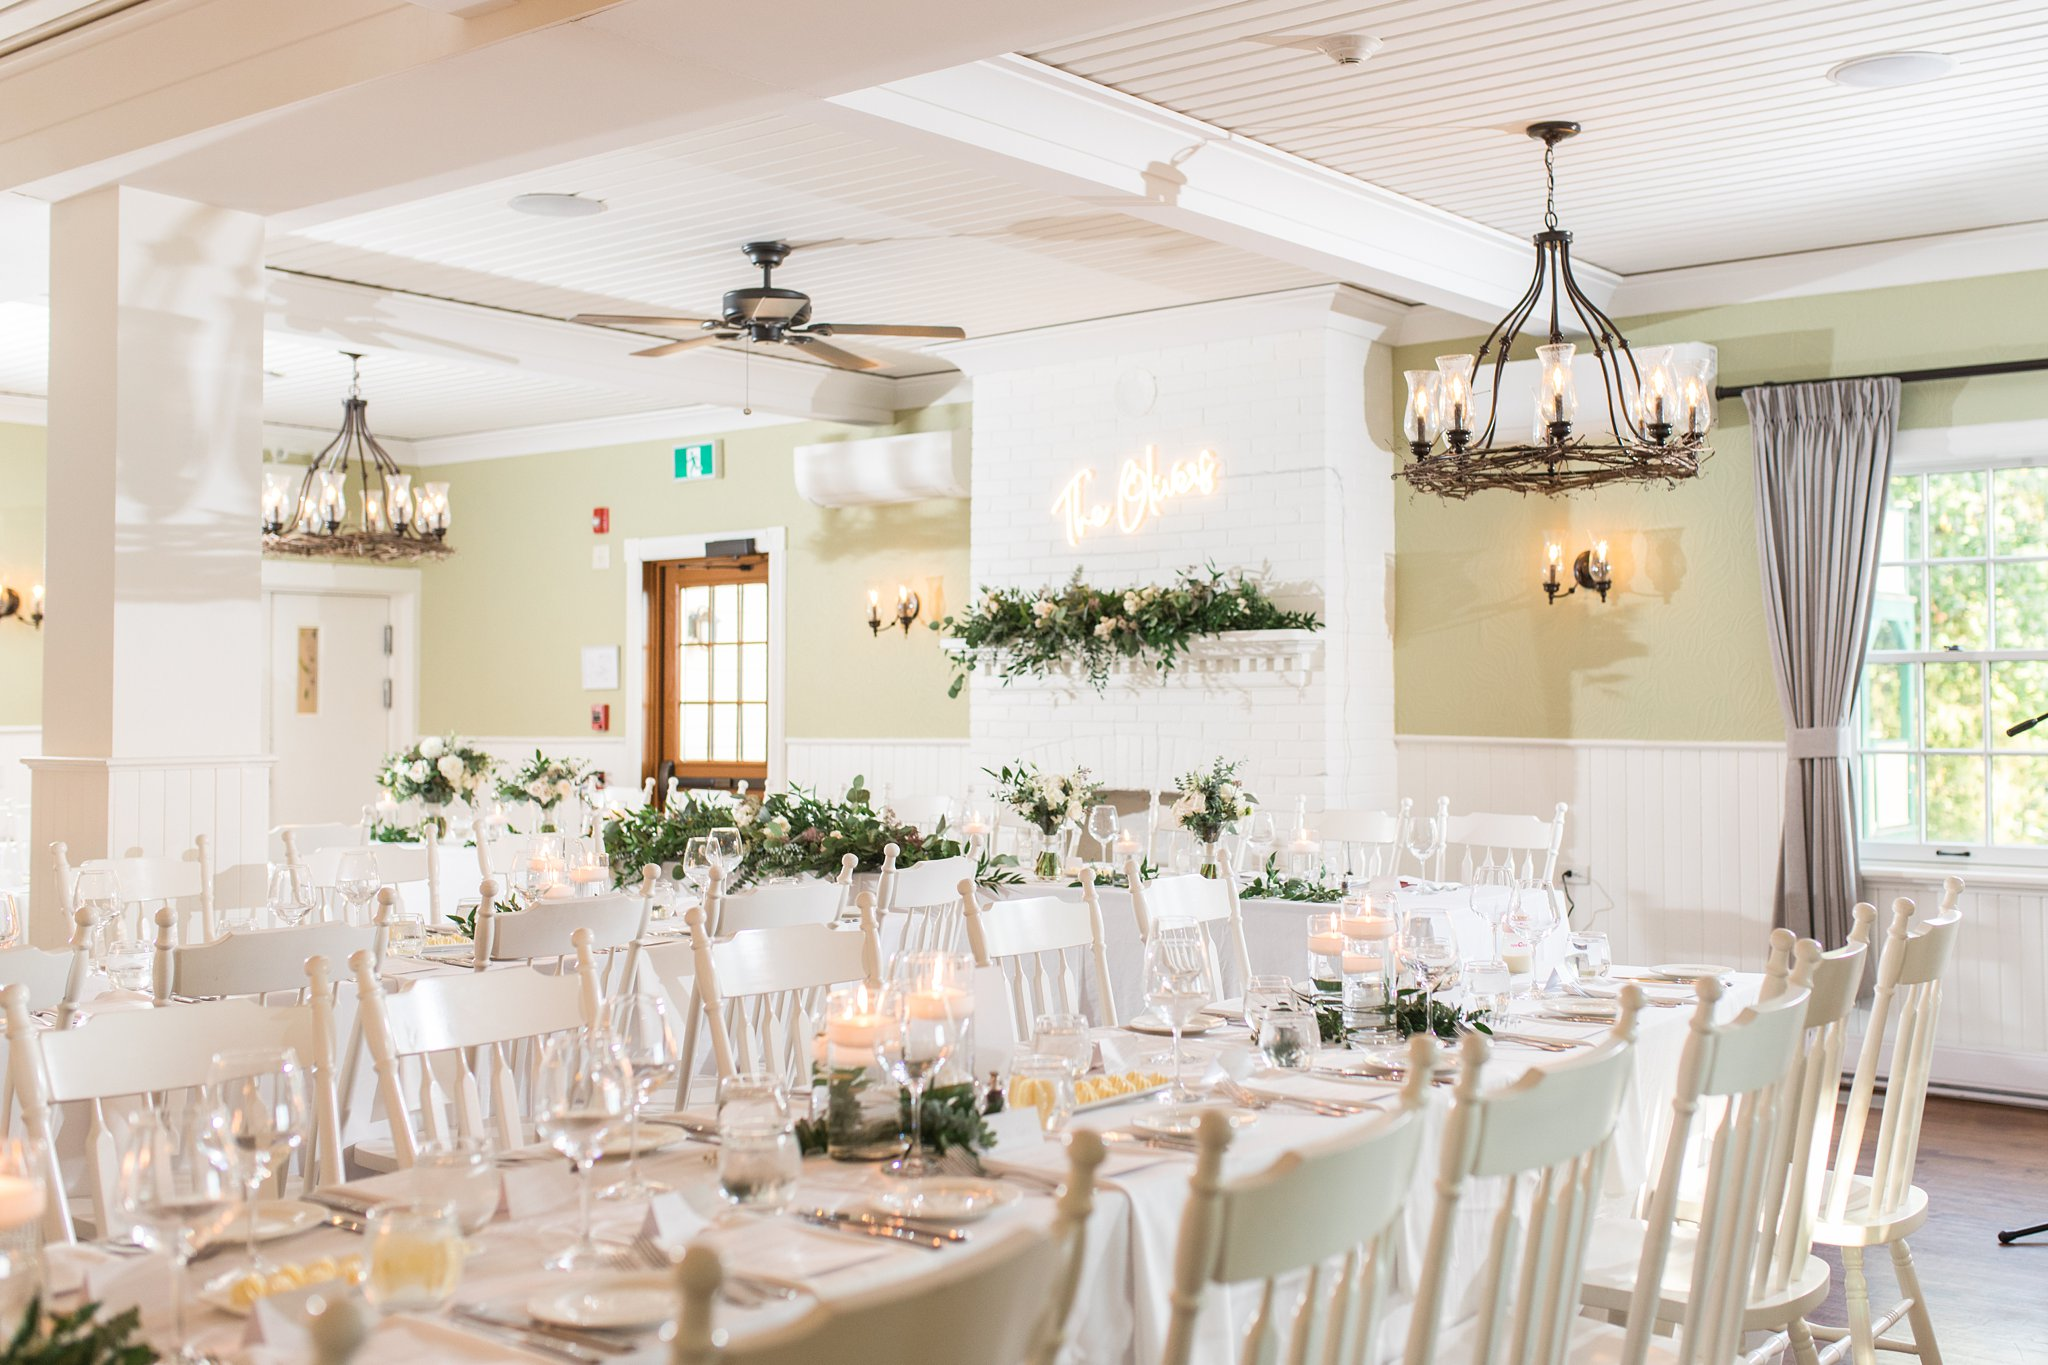 Reception room at the Opinicon Wedding by Amy Pinder Photography